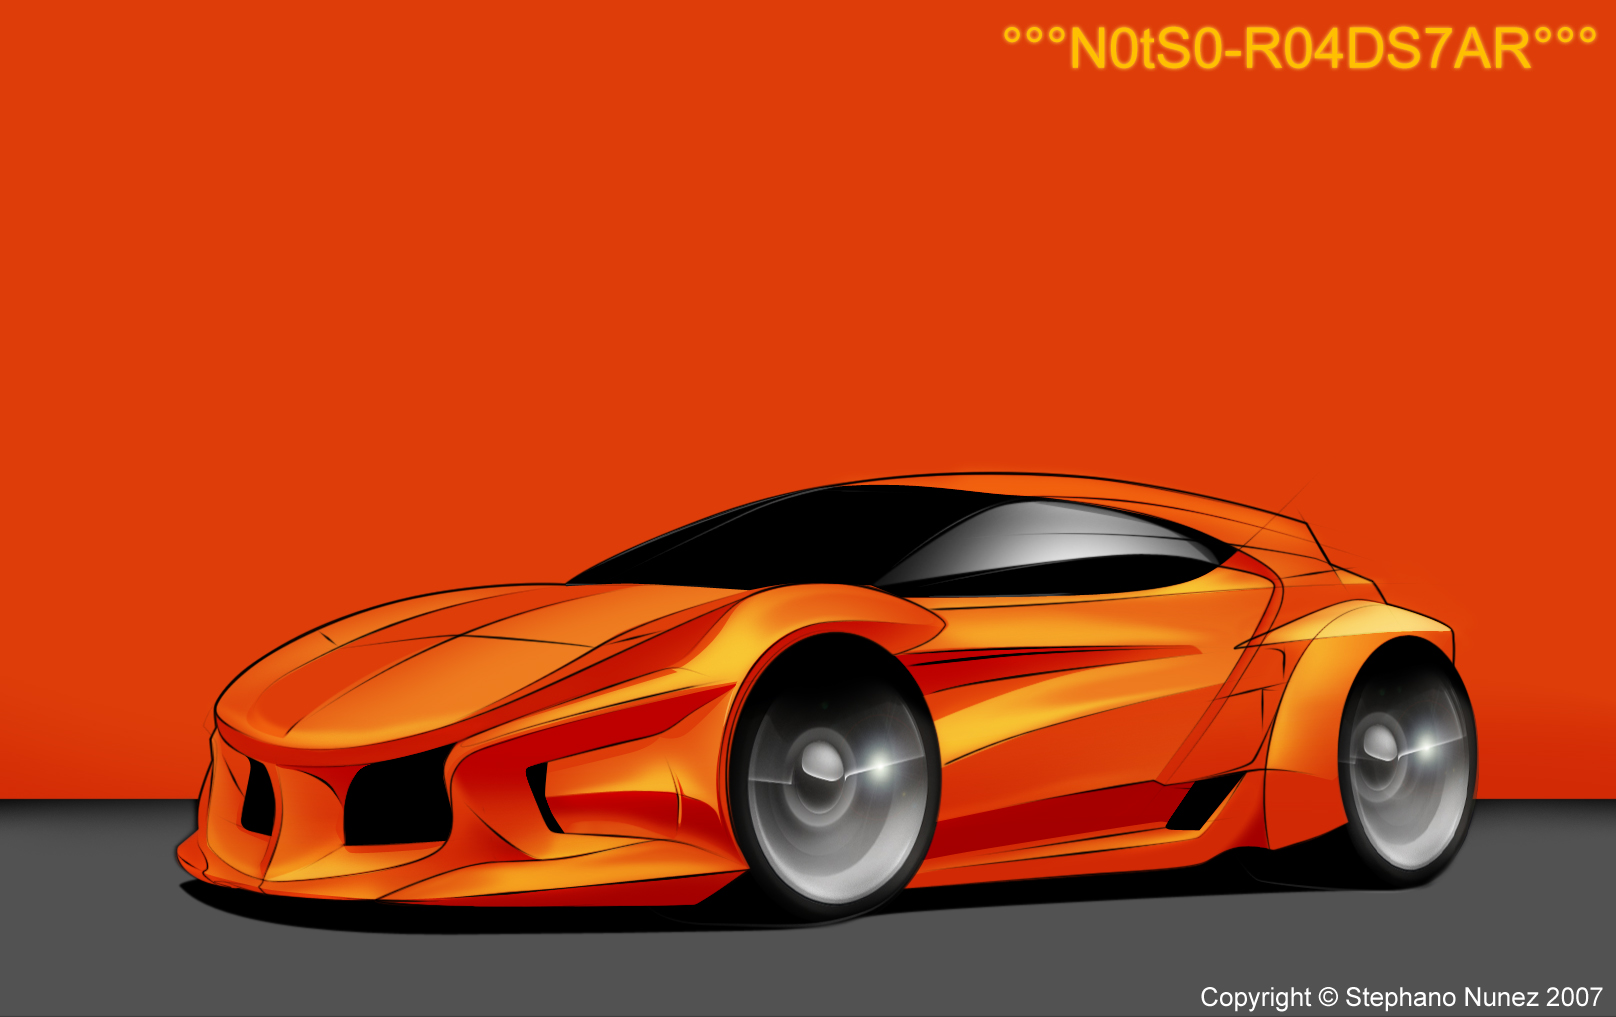 Not-so-Roadster by Dr-GoFast